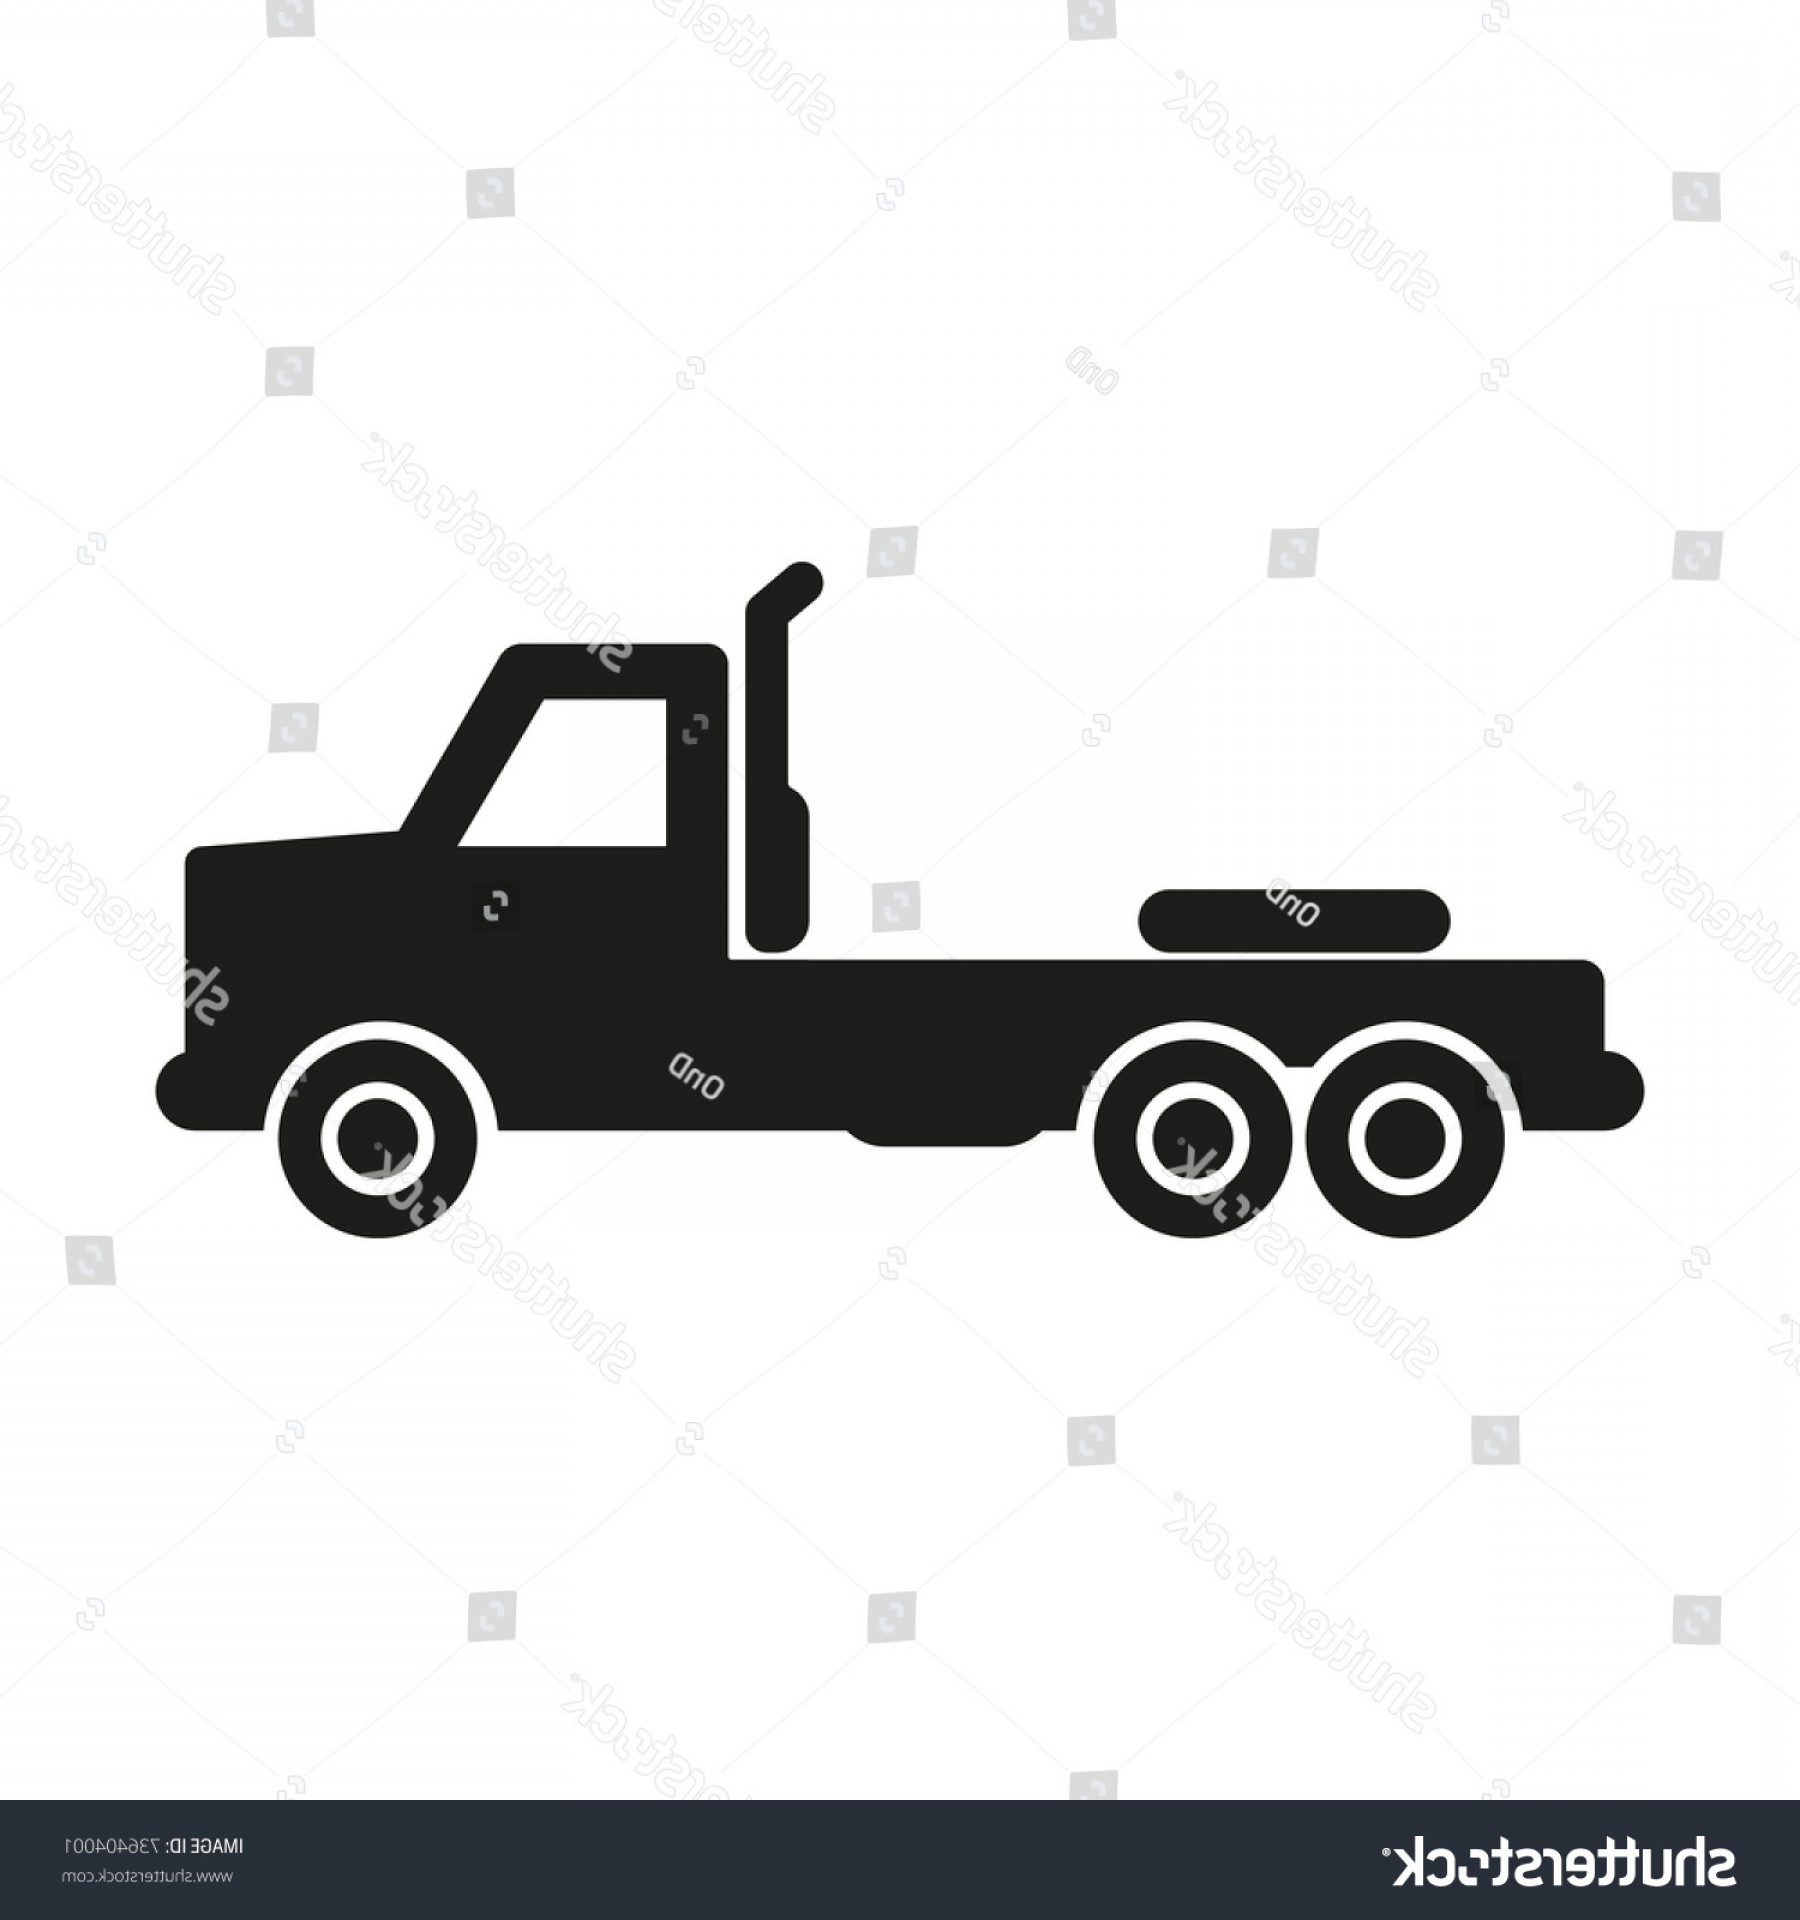 Vector Truck And Trailer Hauling: Truck Without Trailer Simple Icon Silhouette